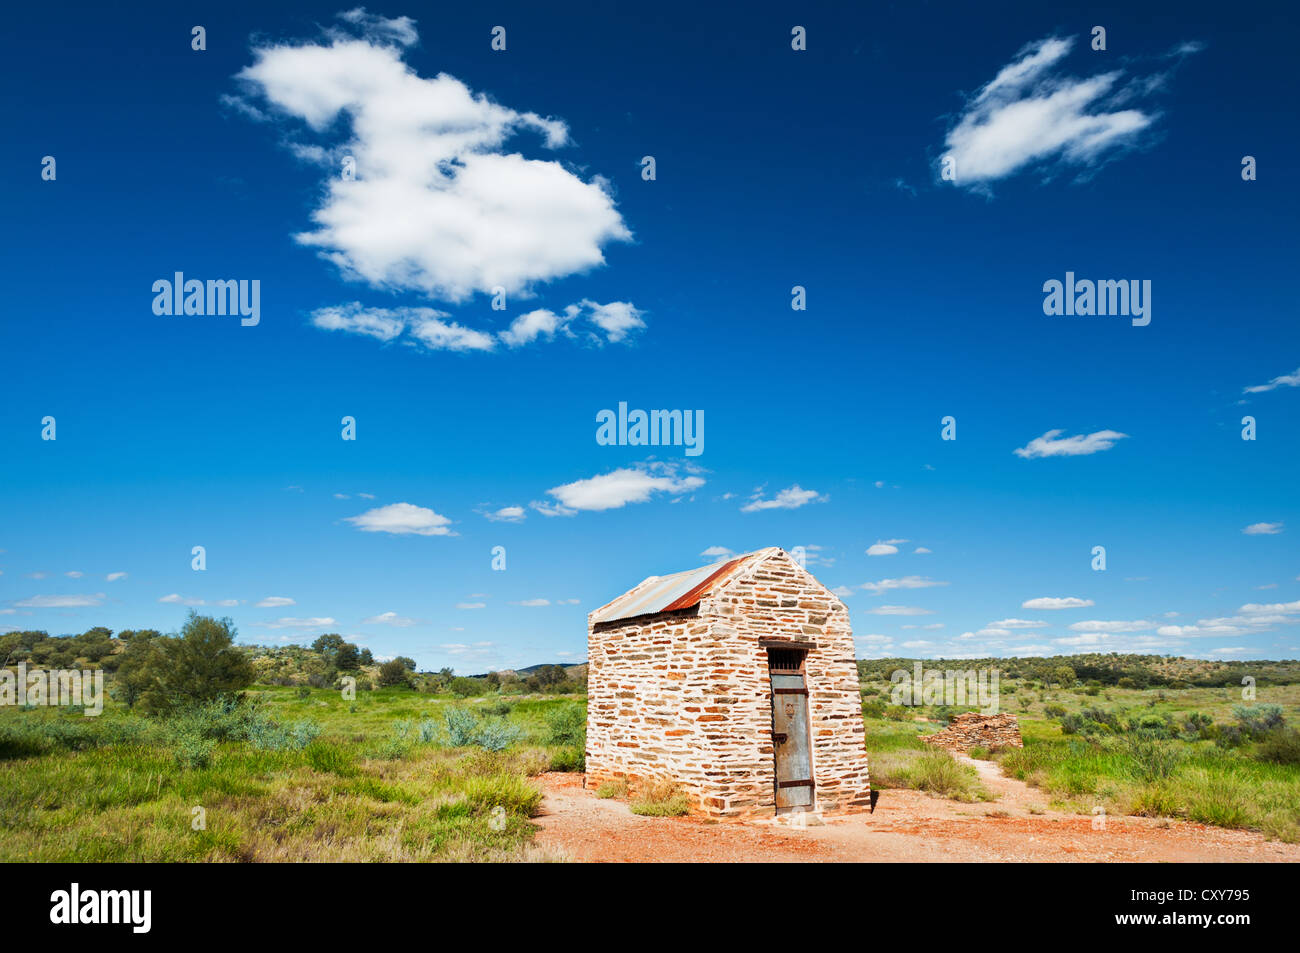 Historical Arltunga Prison in the East MacDonnell Ranges. - Stock Image